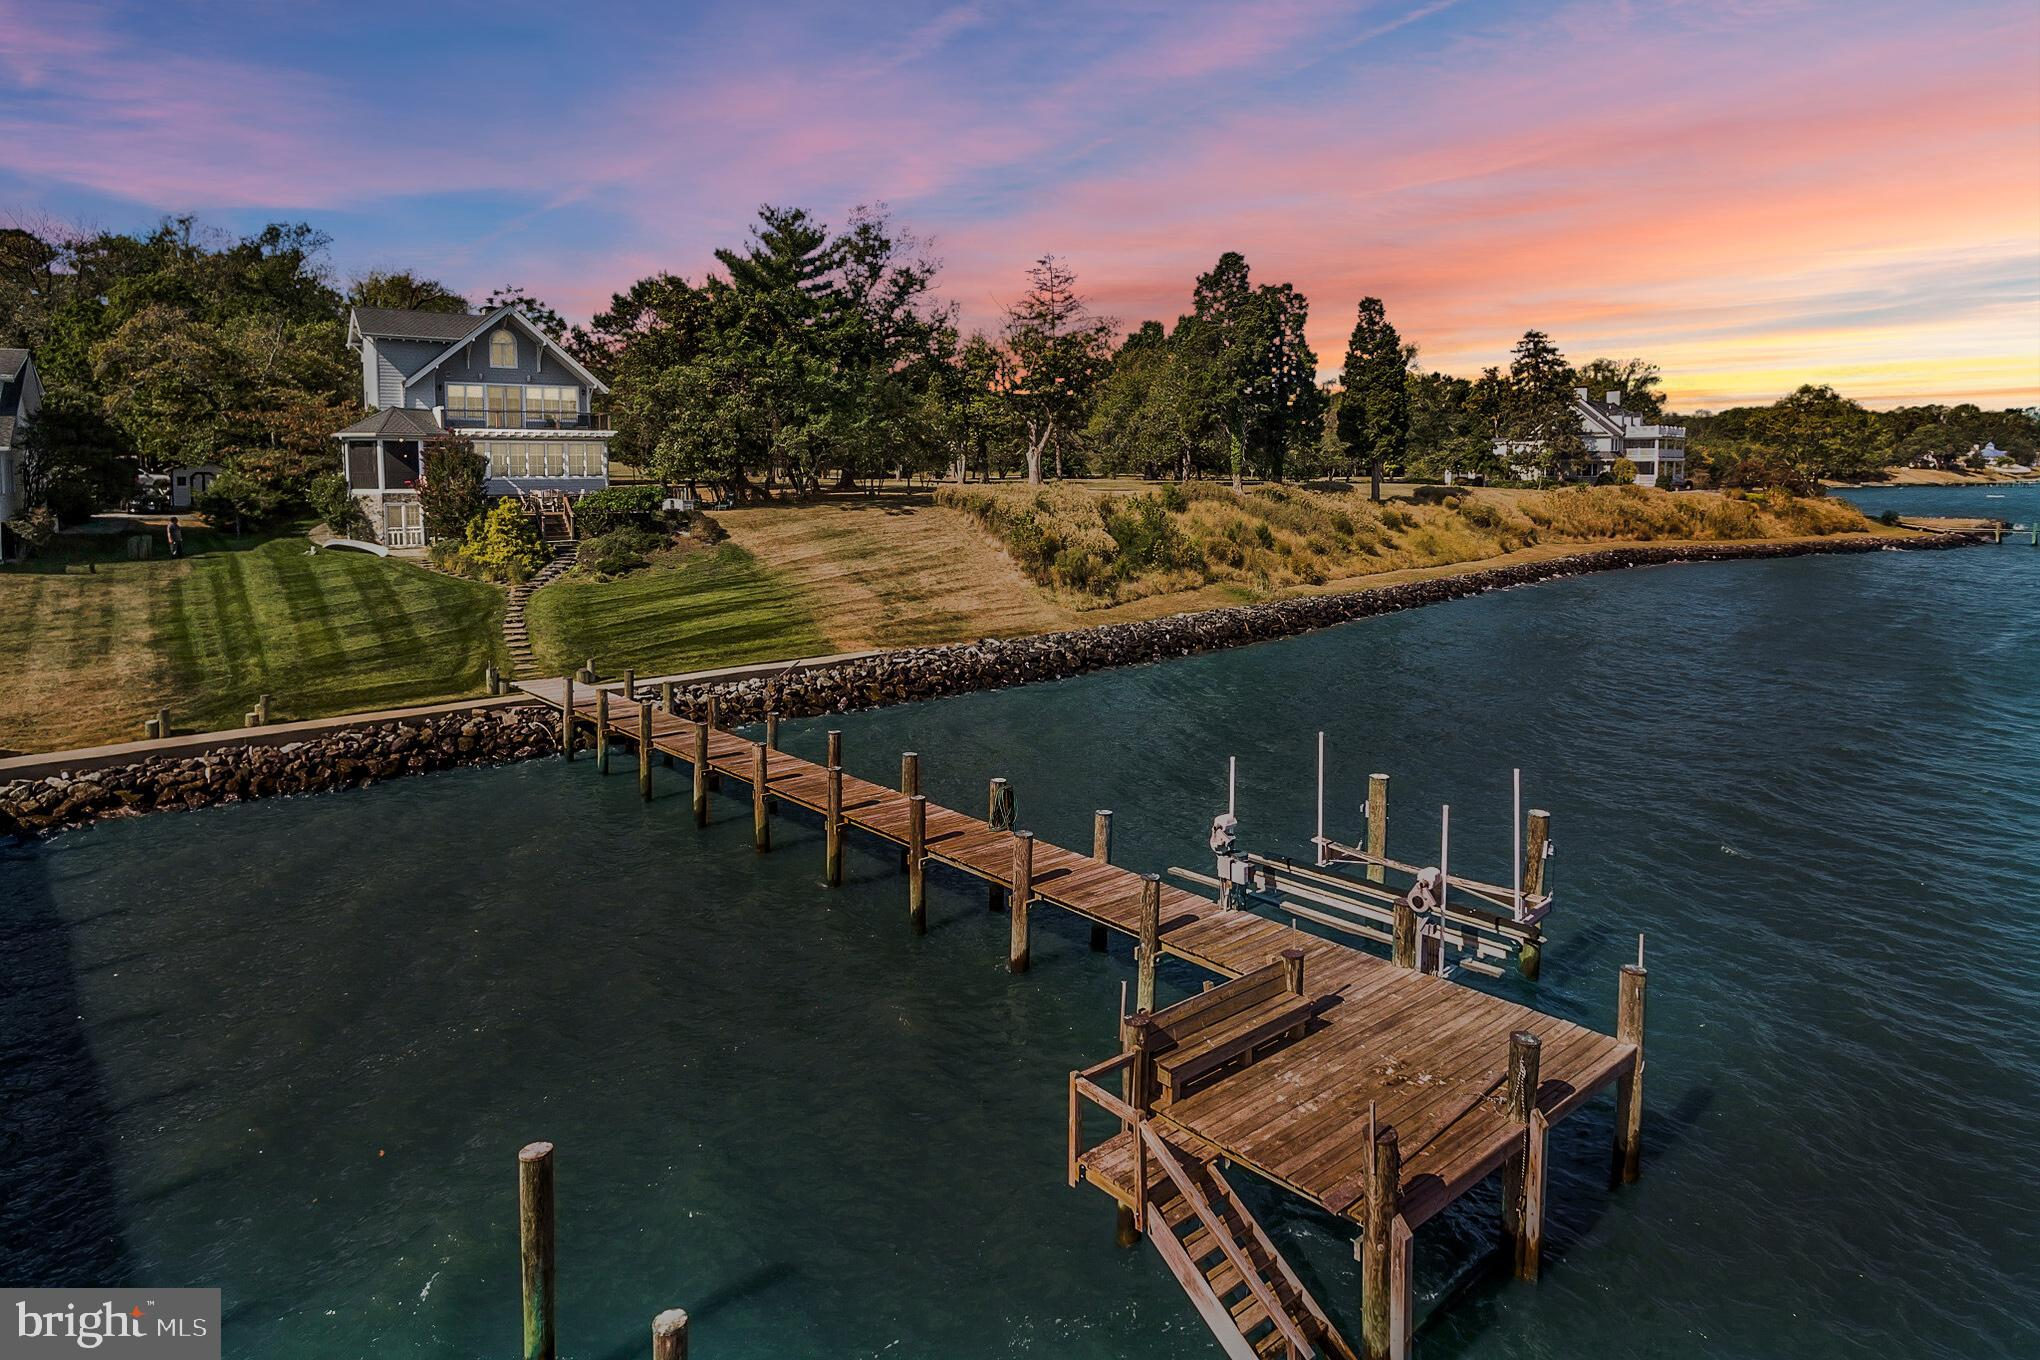 Your search is over for the perfect waterfront home!  Gorgeous Chesapeake Bay views with your own private pier and lift. Easy access to the water from flagstone steps.  The house was rebuilt in 2007 with the highest quality standards. Here you will have the main level with gorgeous kitchen and walk in butlers pantry, formal dining room, a library/bedroom with full bath next door and magnificent living room and sunroom all with Spectacular Bay Views! Huge deck off the living room and private screened porch allow you enjoy the bay breezes throughout the year. Upstairs you have a wide staircase to ascend to the bedroom level with 3 bedrooms, full bath with steam shower and master suite and beautifully appointed master bath. One bedroom has it's own private deck for out of this world views. Striking architectural details are seen from the decks along with architectural shingles, wood trim and Hardy Plank siding. Go up another level with still more views from lots of windows to the bonus room which is lined with cedar closets for storage. Unlike most waterfront homes, here you have a full unfinished basement for storage of your watercraft and household items. It is a walk out to the steps down to the pier. So many upgrades are found in this beautiful home including, irrigation, extra lot was purchased giving you more land and frontage with no easements. All the floors are heated with radiant heat , steam showers, jacuzzi tubs, skylights, wood floors, walk in pantry, pocket doors, built in book shelves, kitchen features wine cooler, espresso maker, double ovens, 6 burner propane stove, prep sink and large deep stainless sink, utility room with sink and extra refrigerator, 2 generators, water softener, UV light and reverse osmosis, Weather resistant Anderson windows and so much more! So much charm, so many unobstructed views, only 12 years new and situated next to a very large parcel of land with the only house far, far away from yours. Privacy and Bay Frontage are very ha